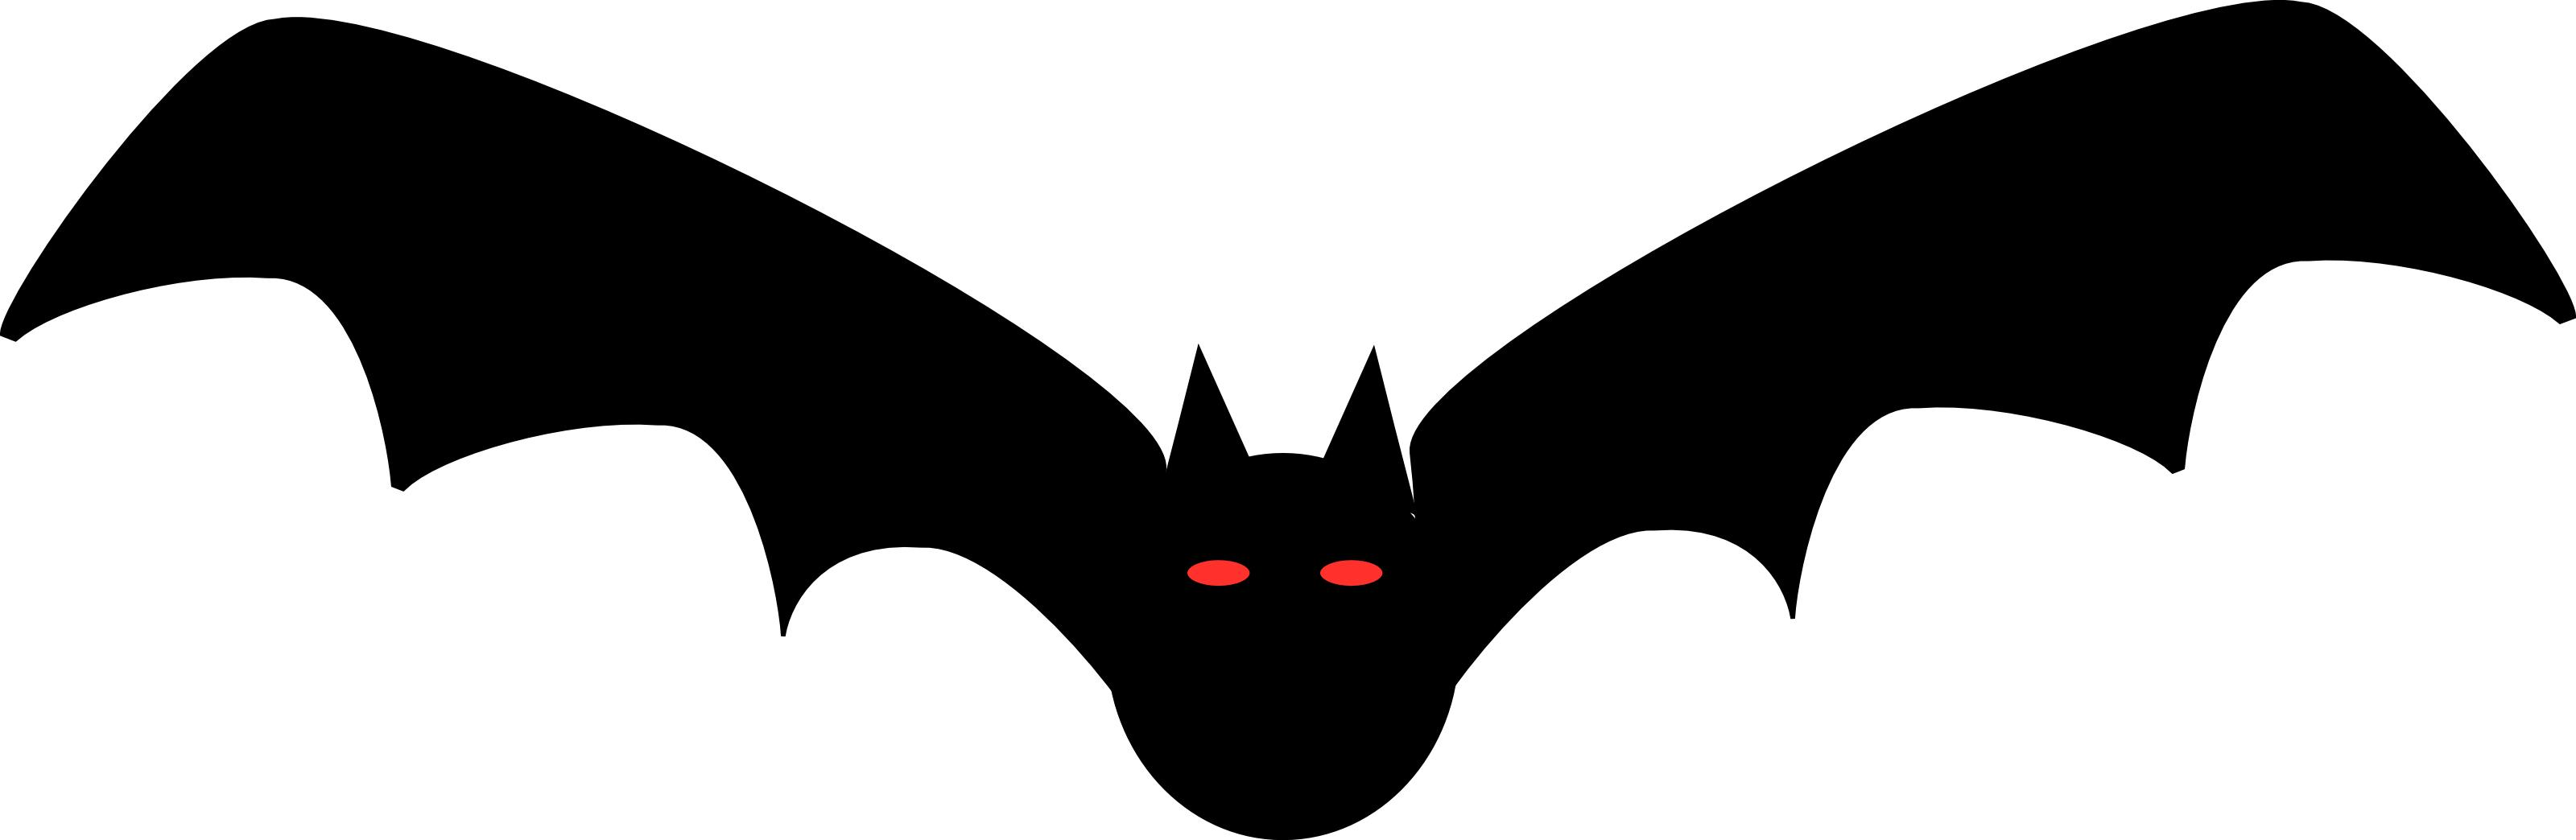 3200x1044 Top Black Bat Clip Art Vector Pictures